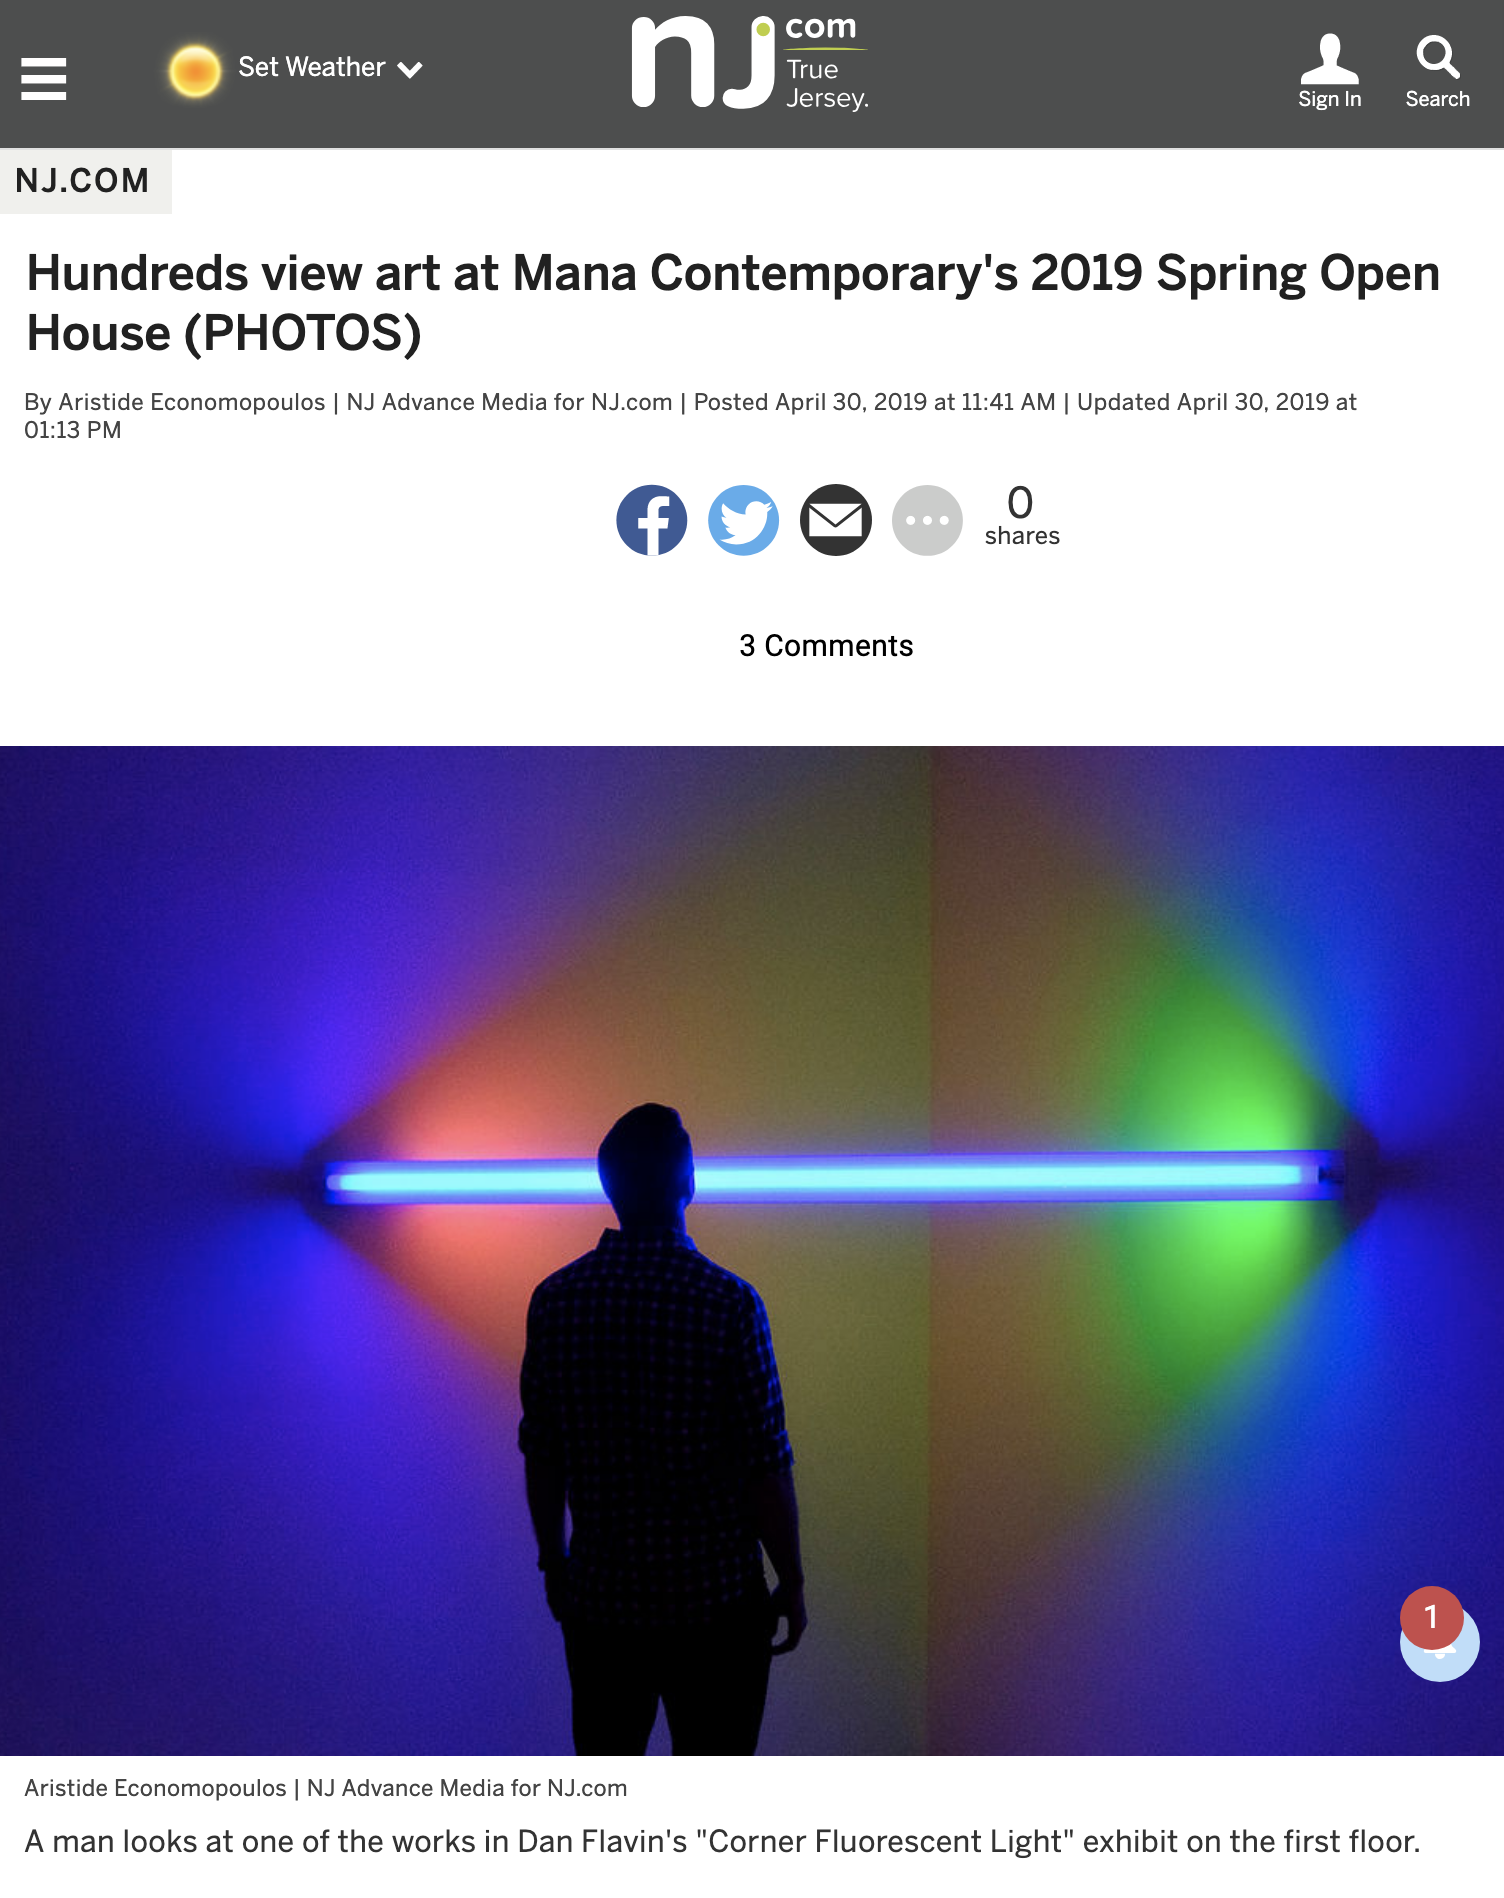 Hundreds view art at Mana Contemporary's 2019 Spring Open House (PHOTOS)